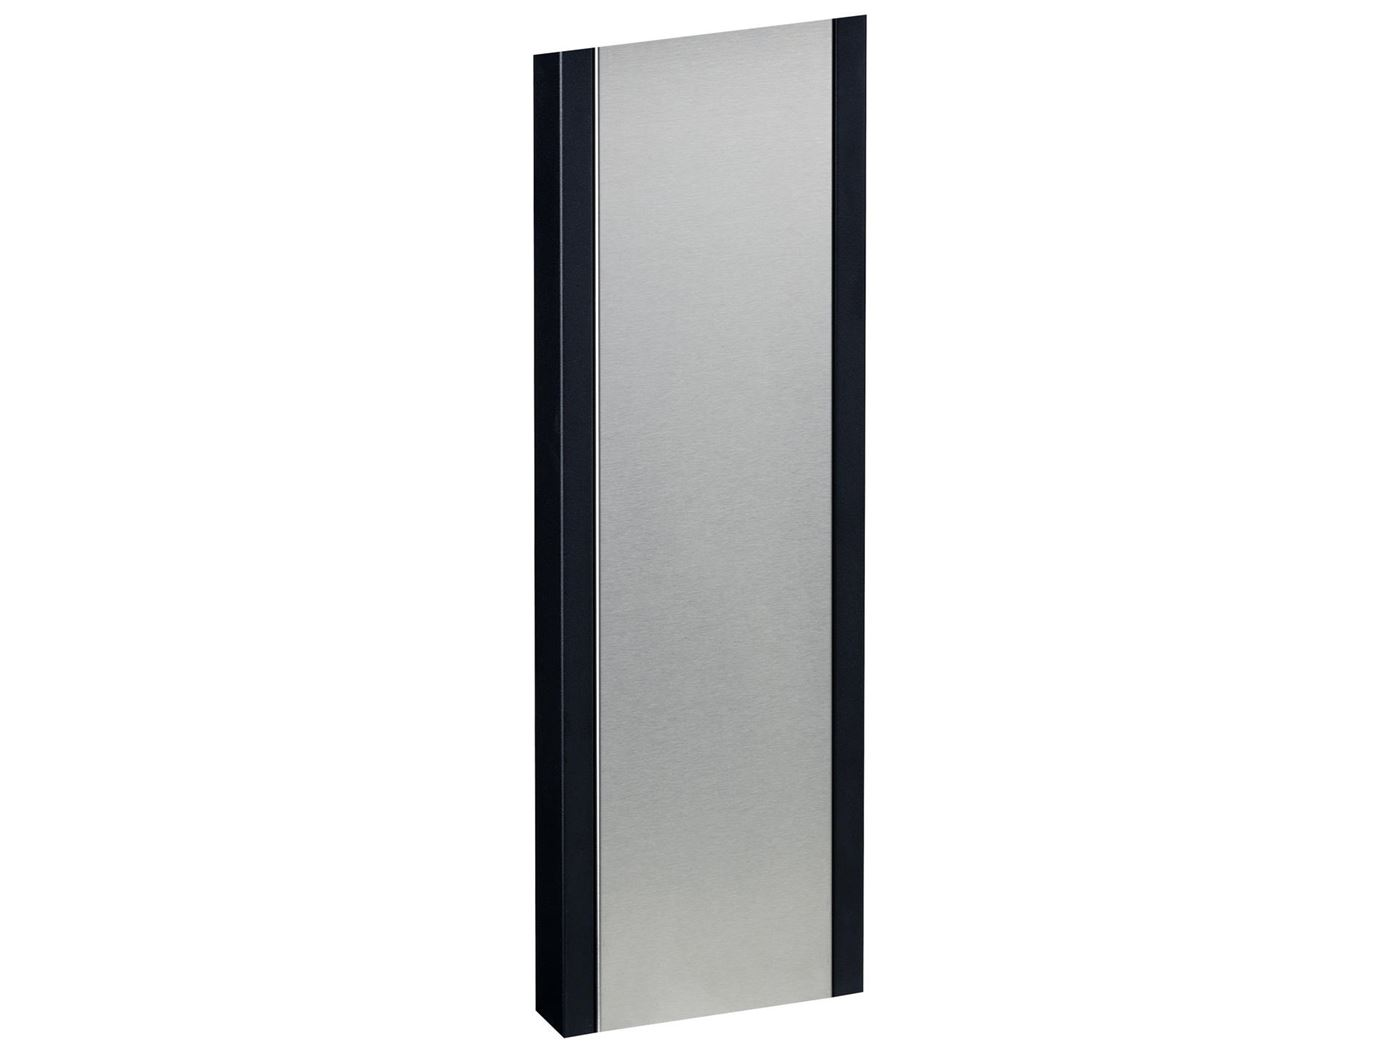 stand 1001 black with stainless steel front